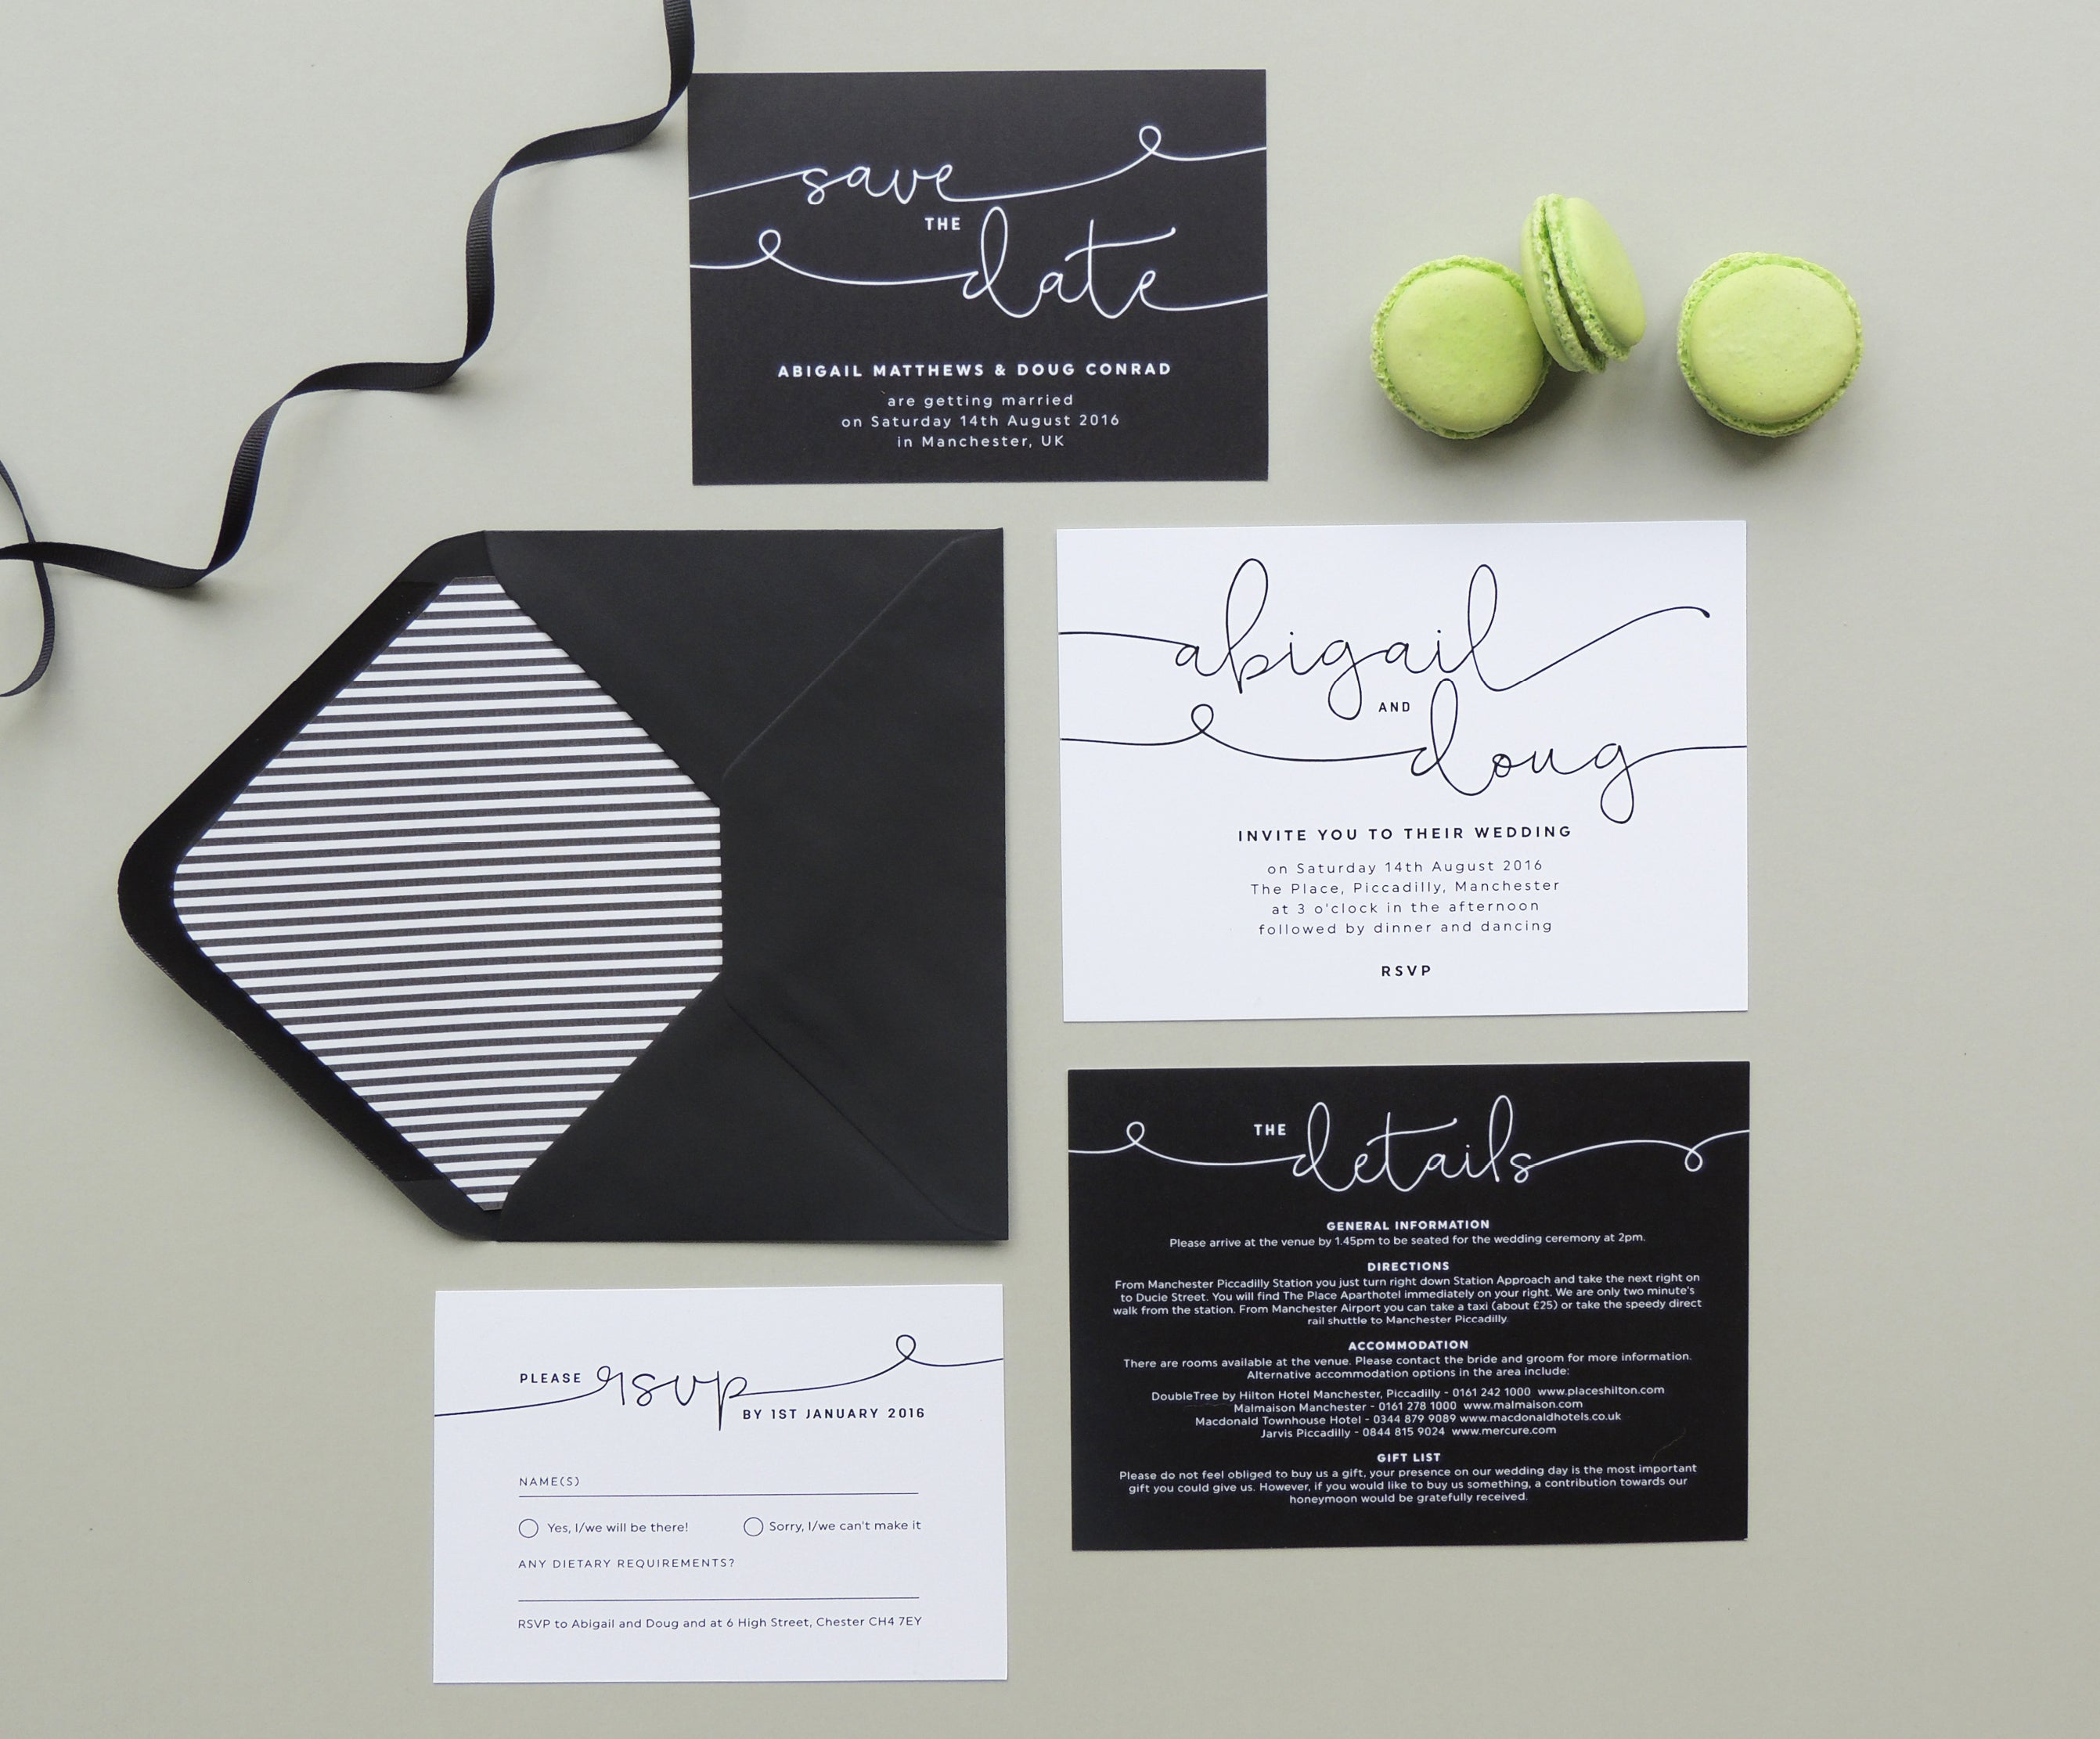 Project Pretty Kate wedding invitations